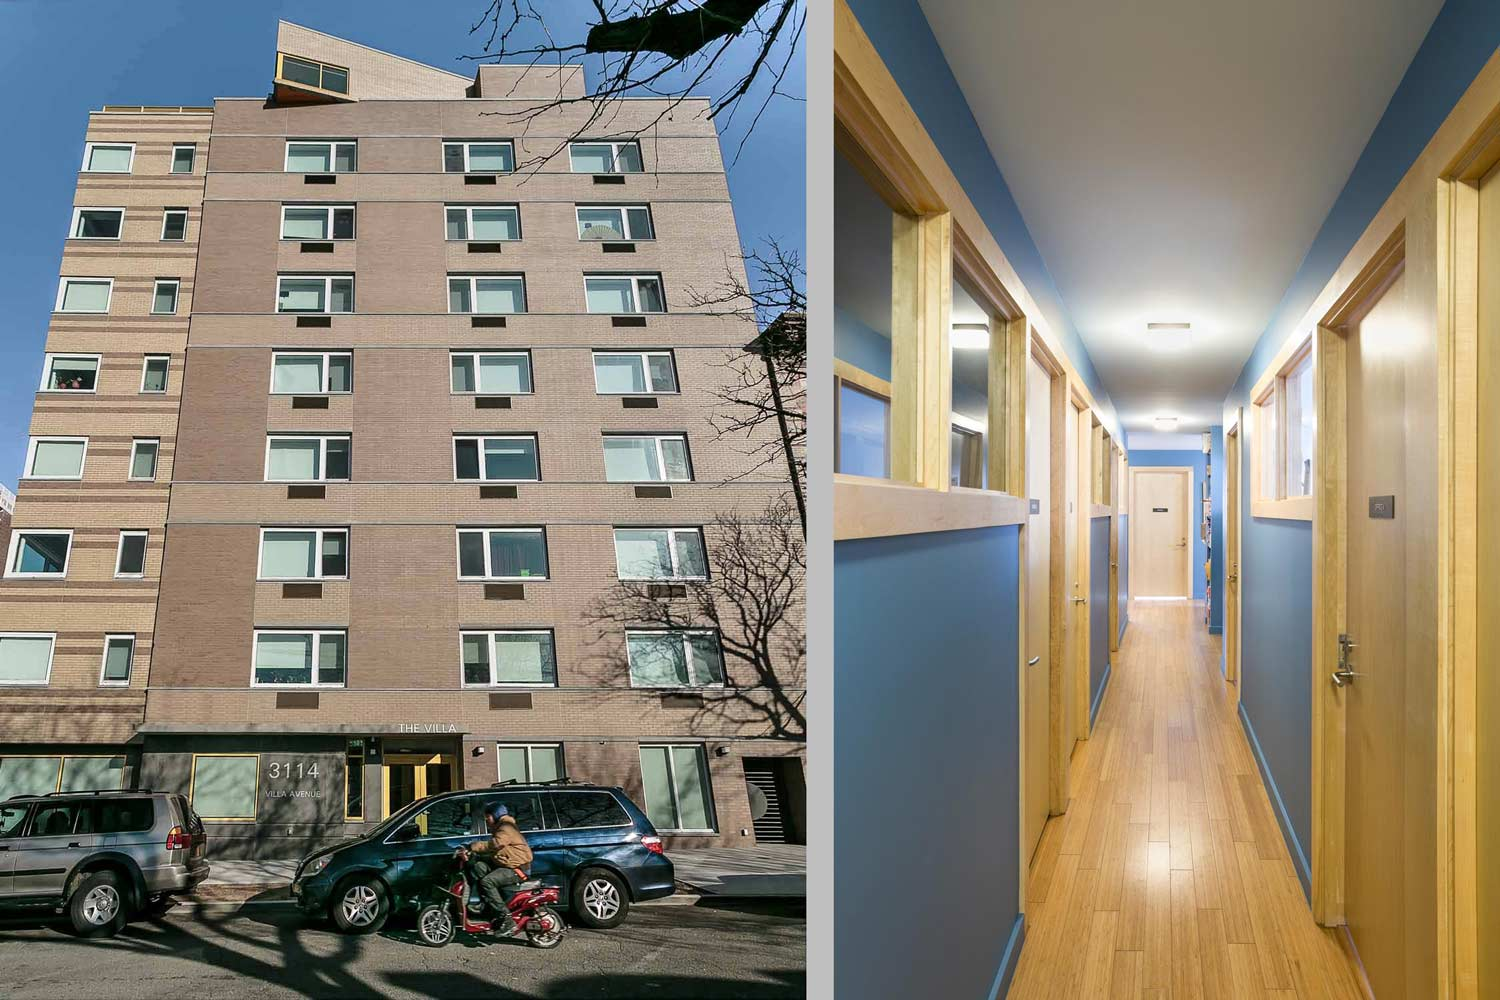 The Villa supportive housing residence offers on site counselling and assistance for residents.